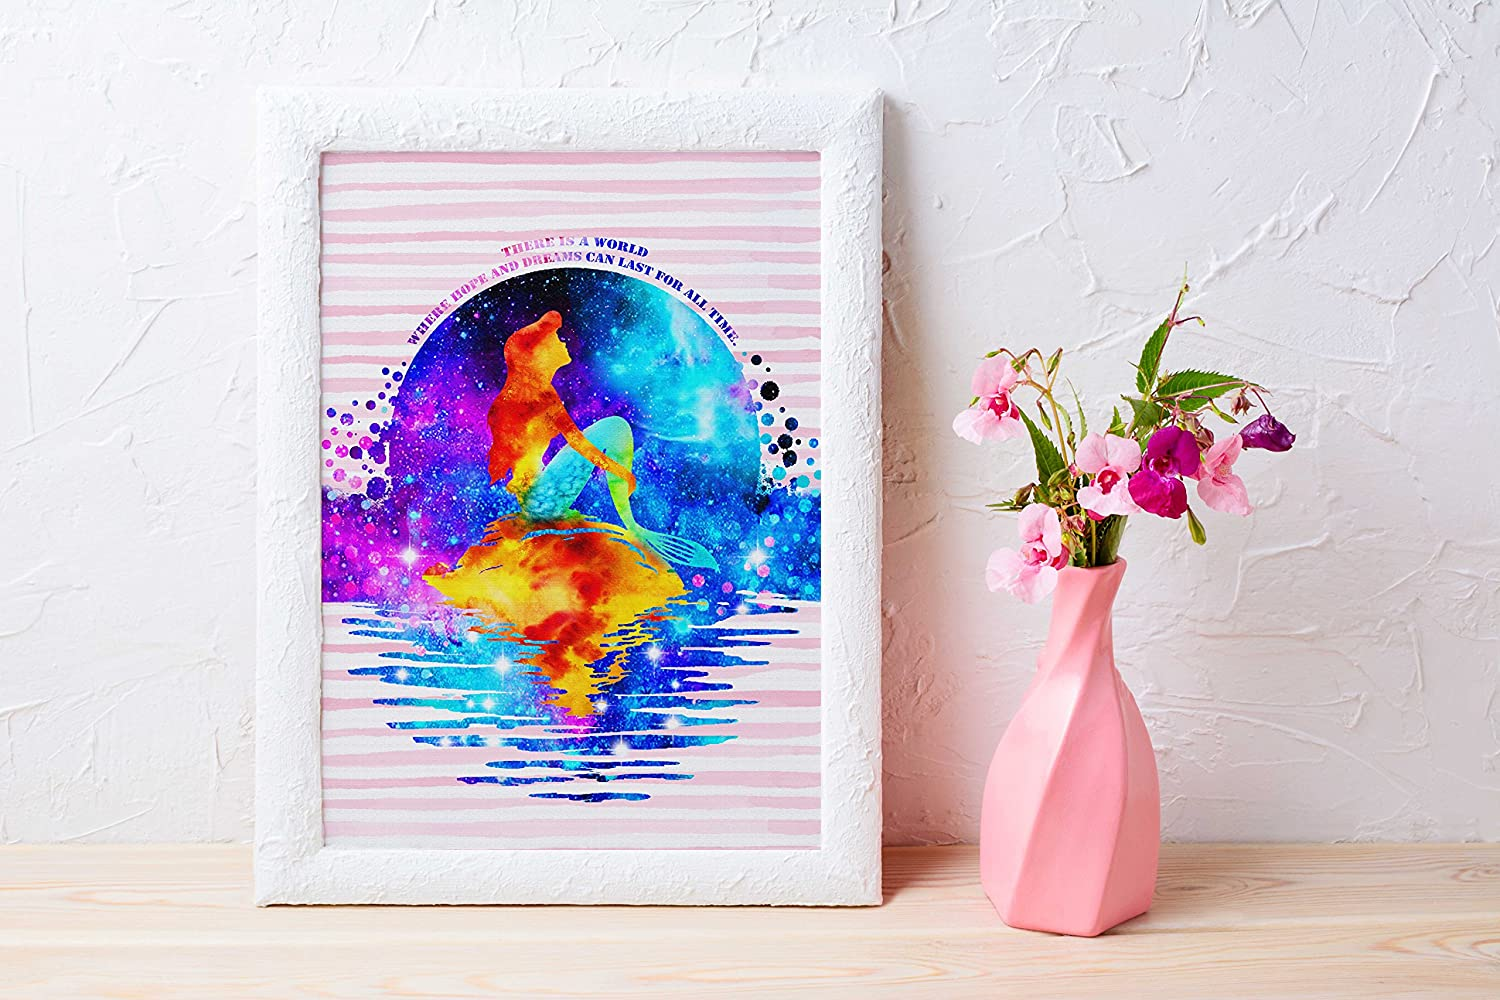 Uhomate Princess Ariel The Little Mermaid Home Canvas Prints Wall Art Anniversary Gifts Baby Gift Inspirational Quotes Wall Decor Living Room Bedroom Bathroom Artwork C033 13X19